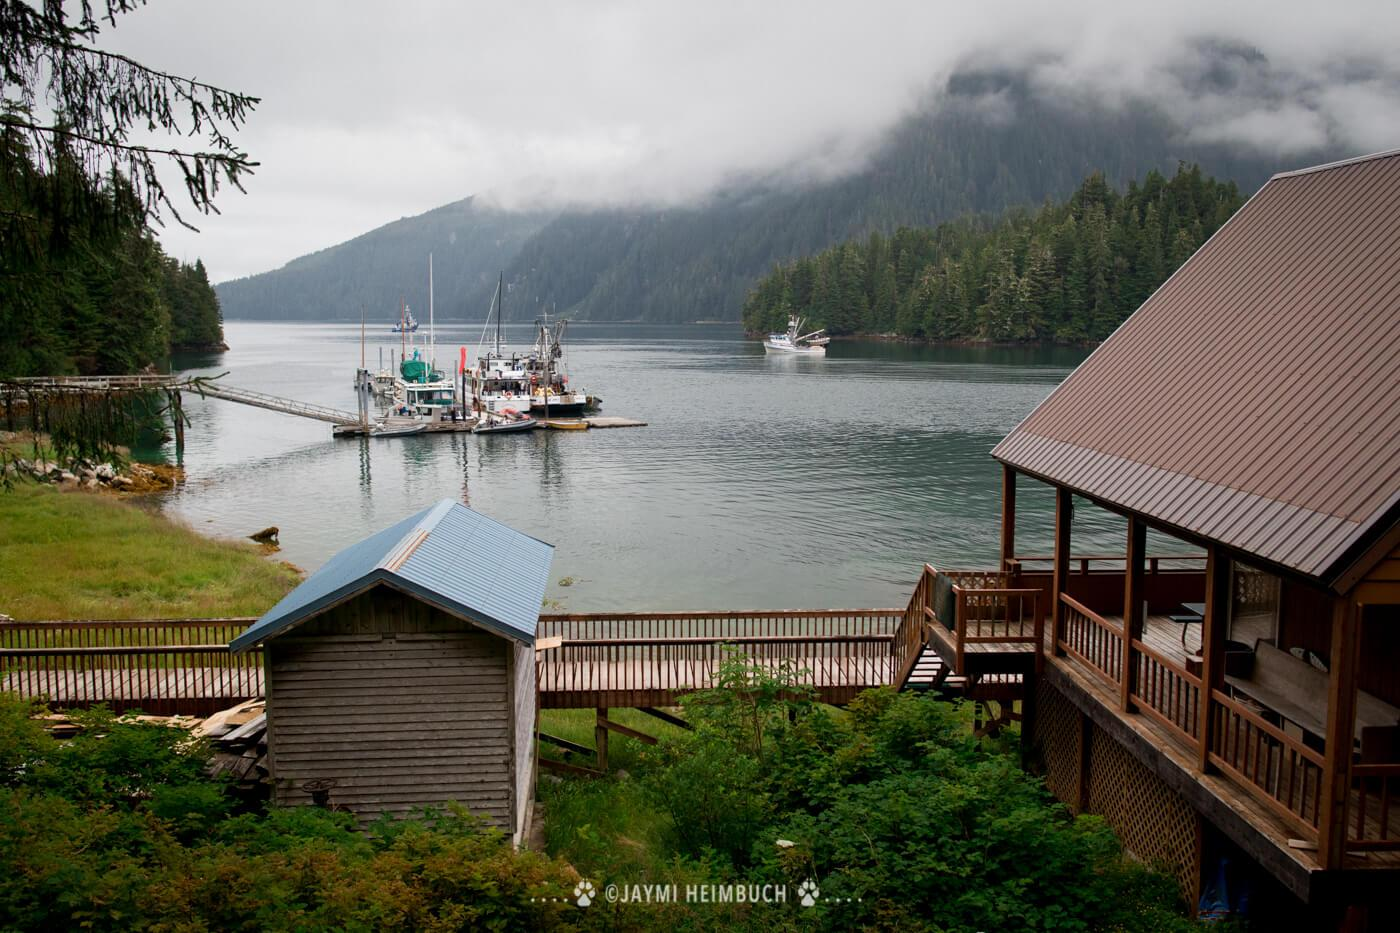 The harbor at Baranof Warm Springs, which features a waterfall and natural hot springs. © Jaymi Heimbuch